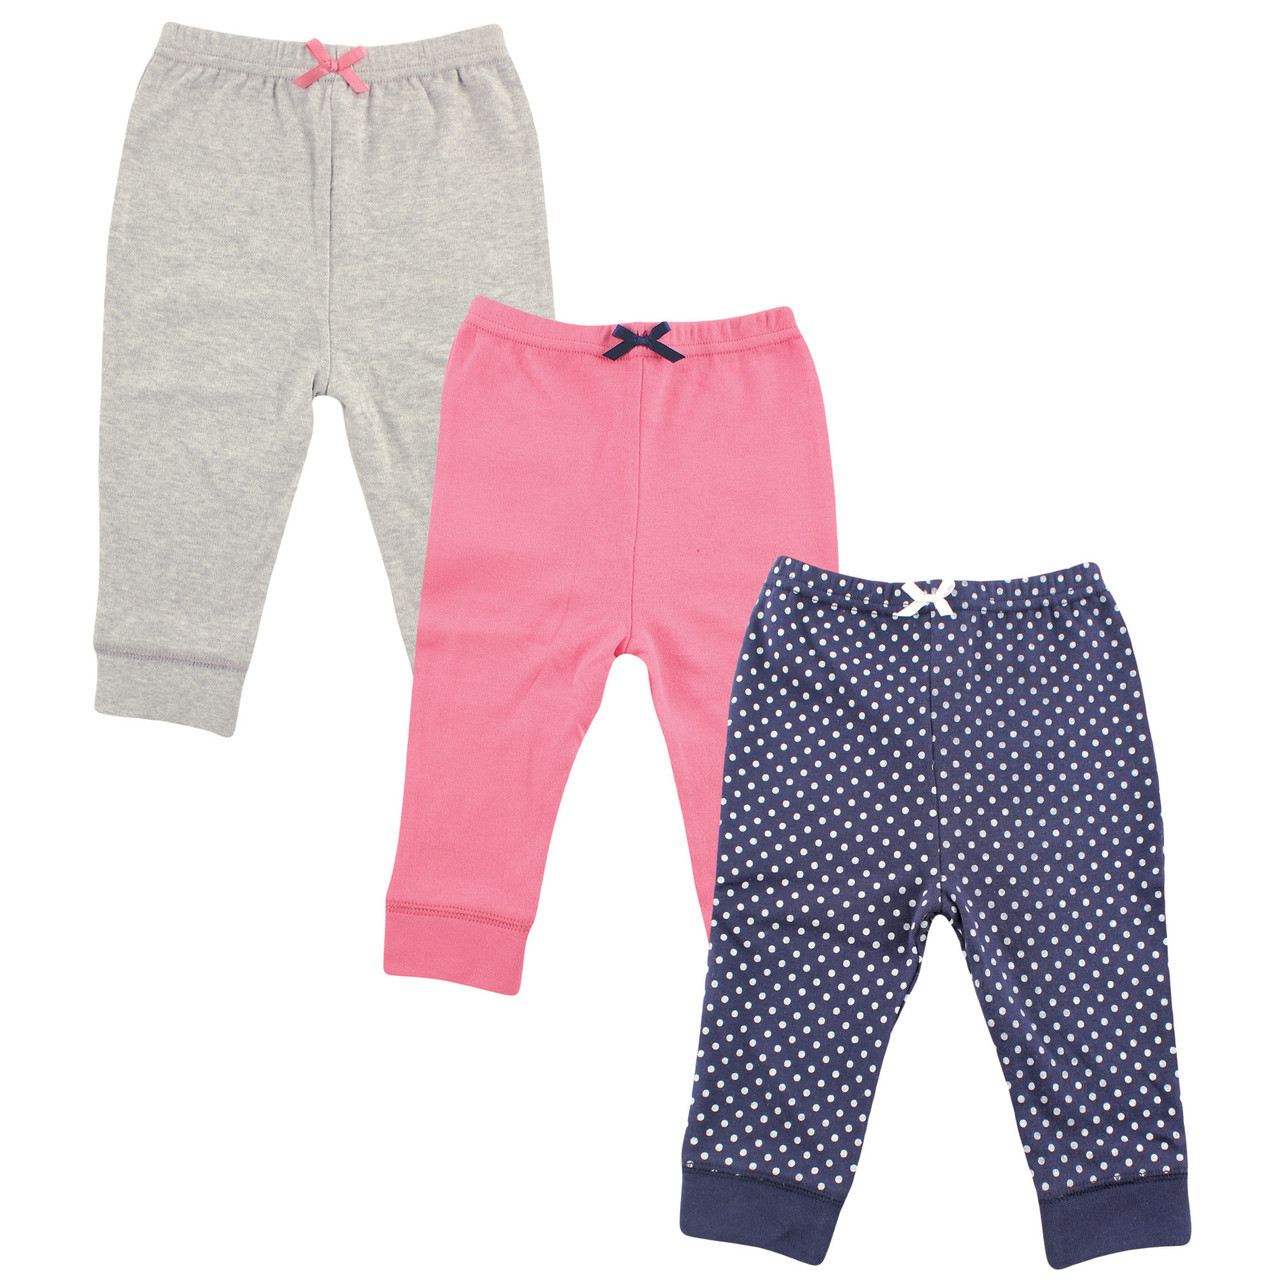 LUVABLE FRIENDS BABY GIRLS 3 PACK TAPERED ANKLE PANTS COTTON 0 TO 24 MONTHS NEW